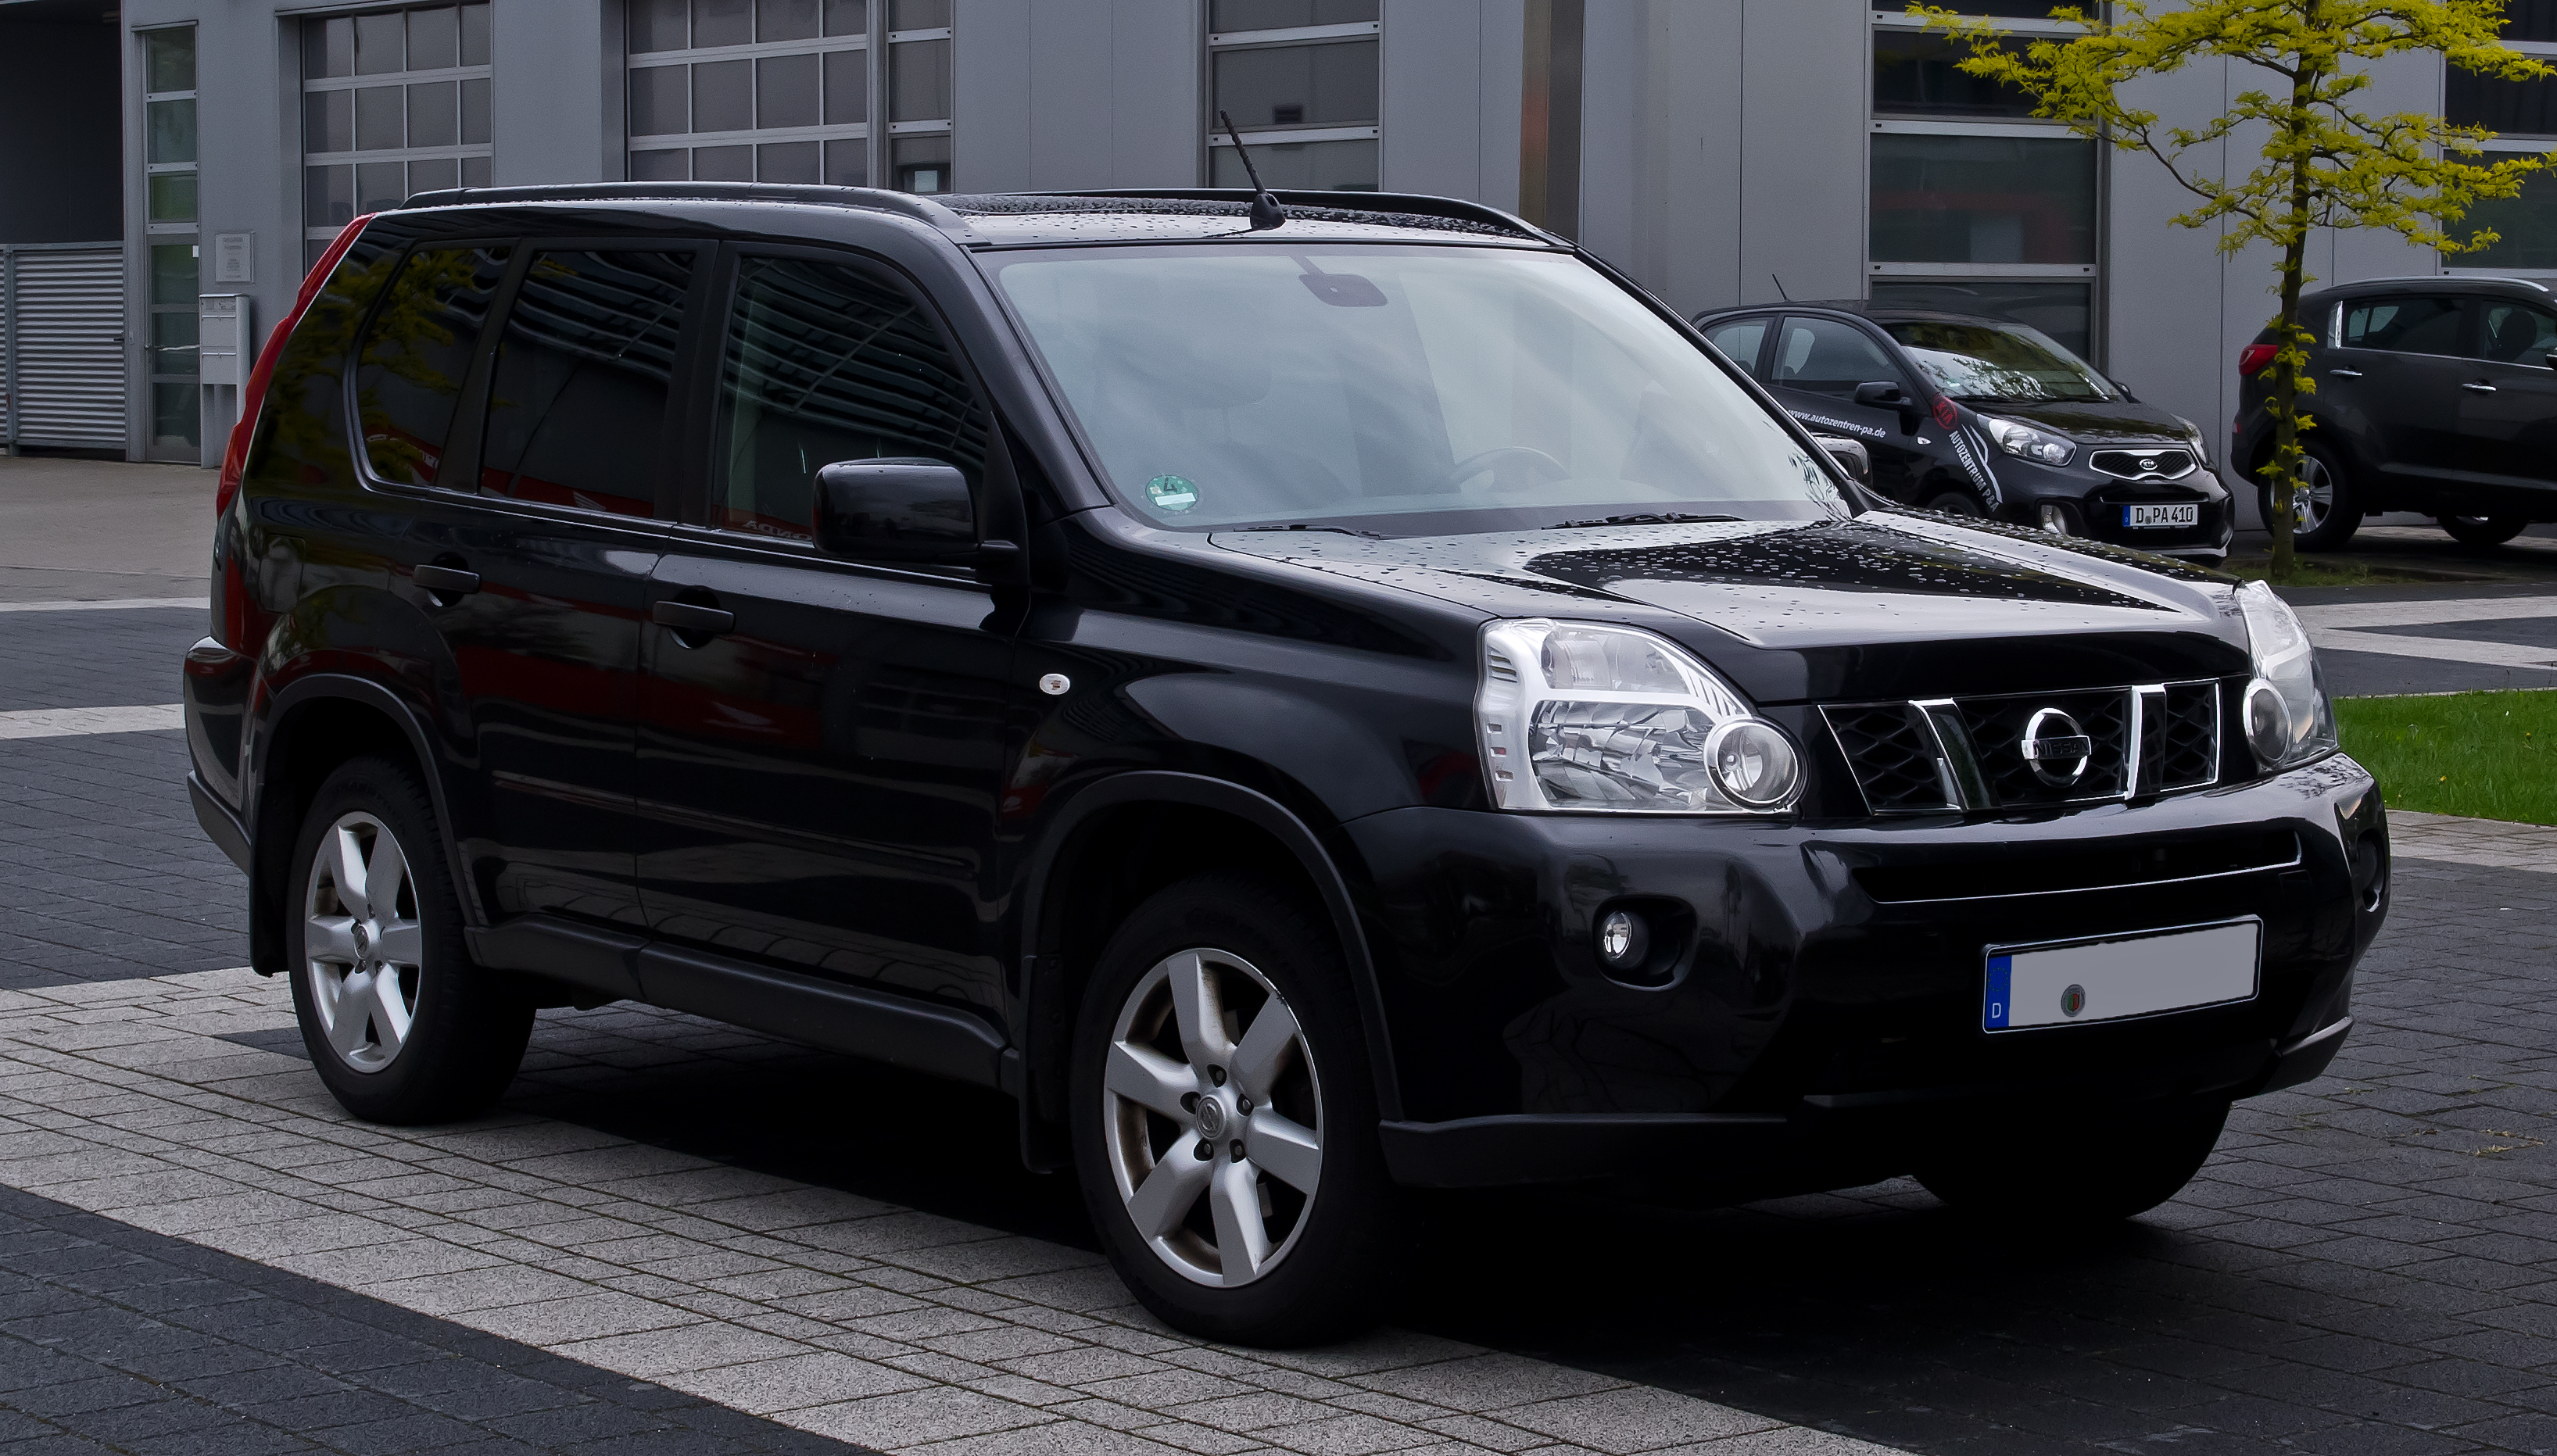 2012 Nissan X-trail 2 – pictures, information and specs - Auto-Database.com